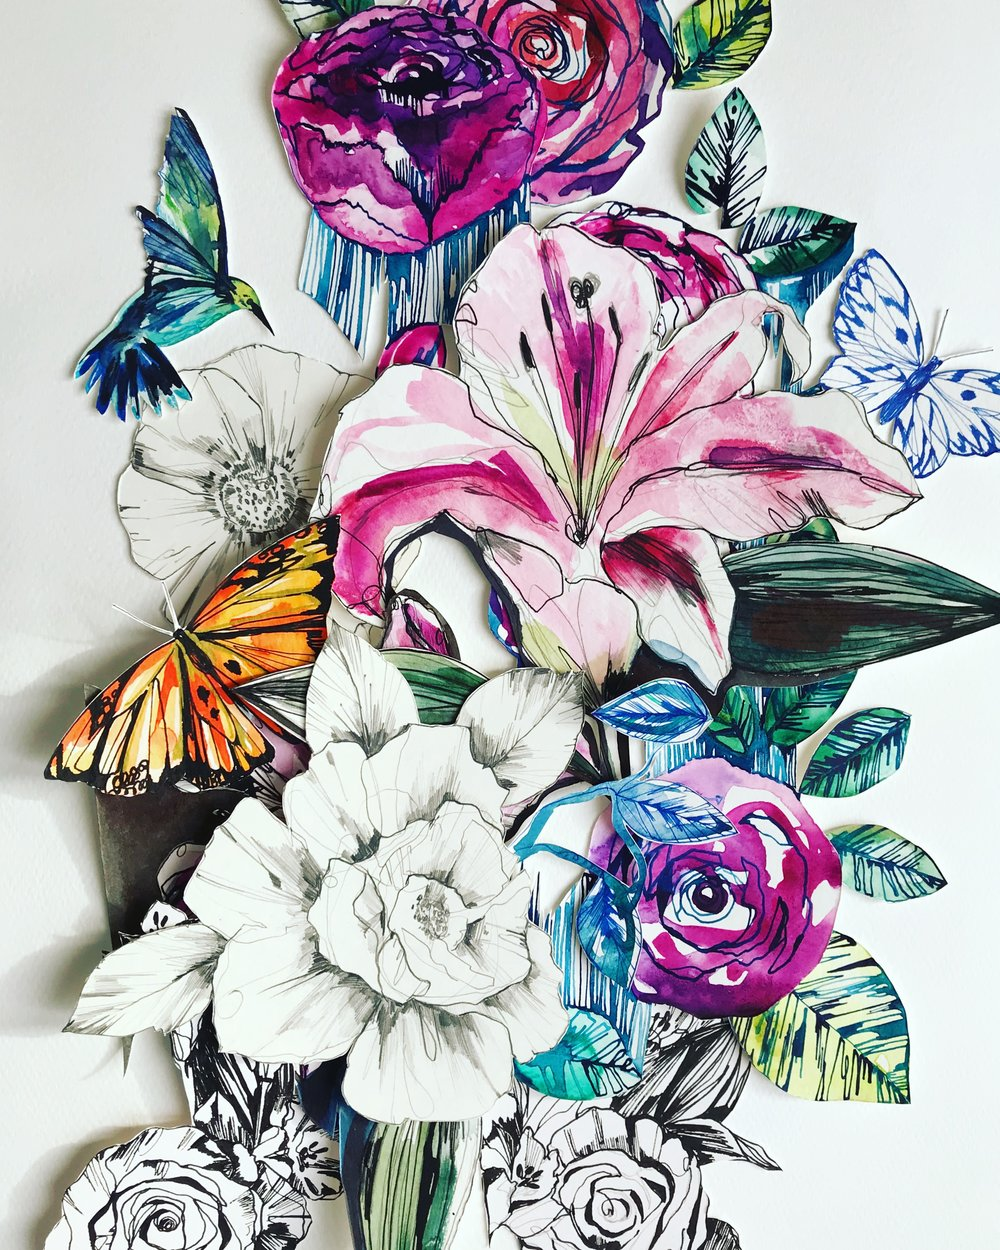 Lily Garden collage by Holly Sharpe